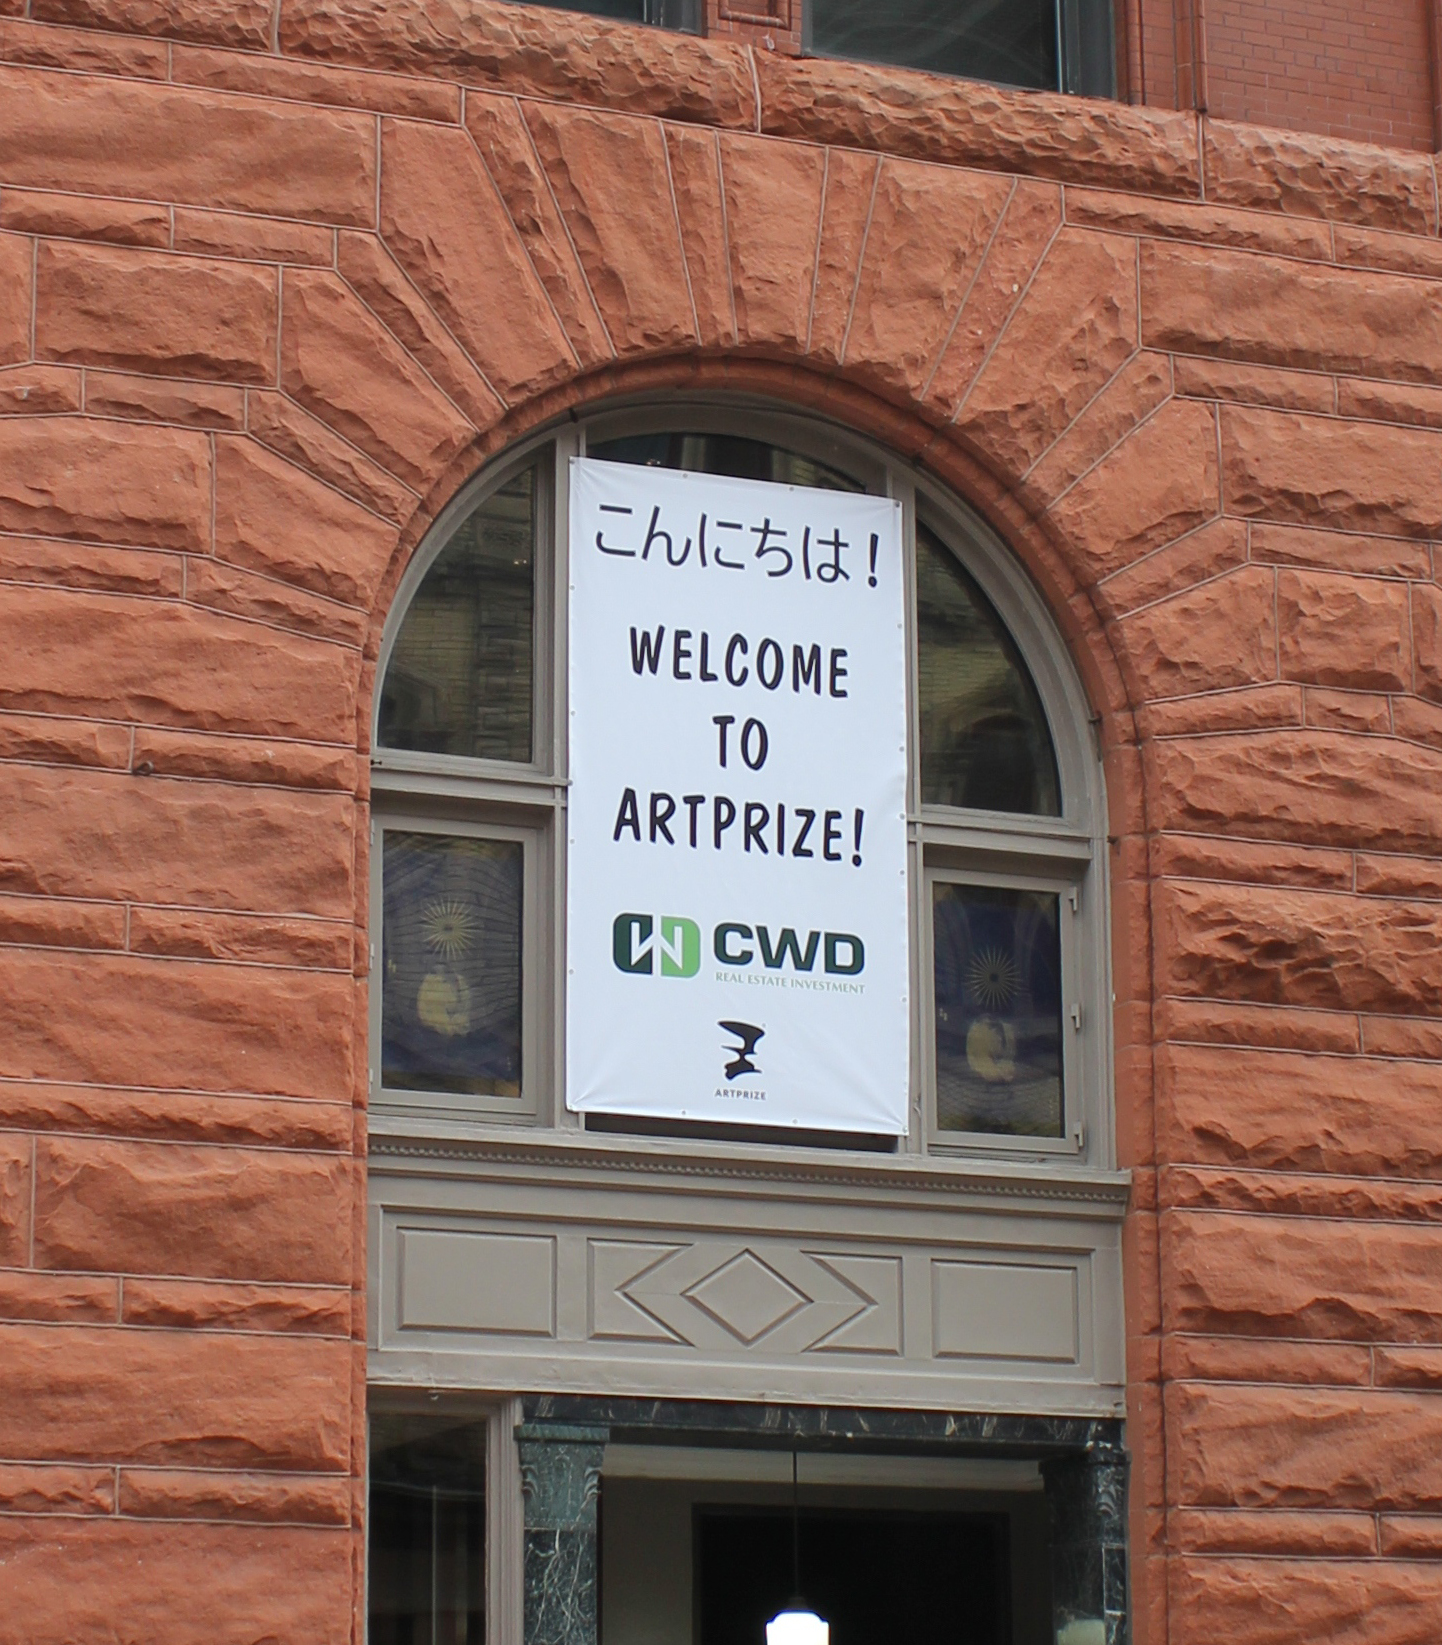 ArtPrize Sign on Brick Building